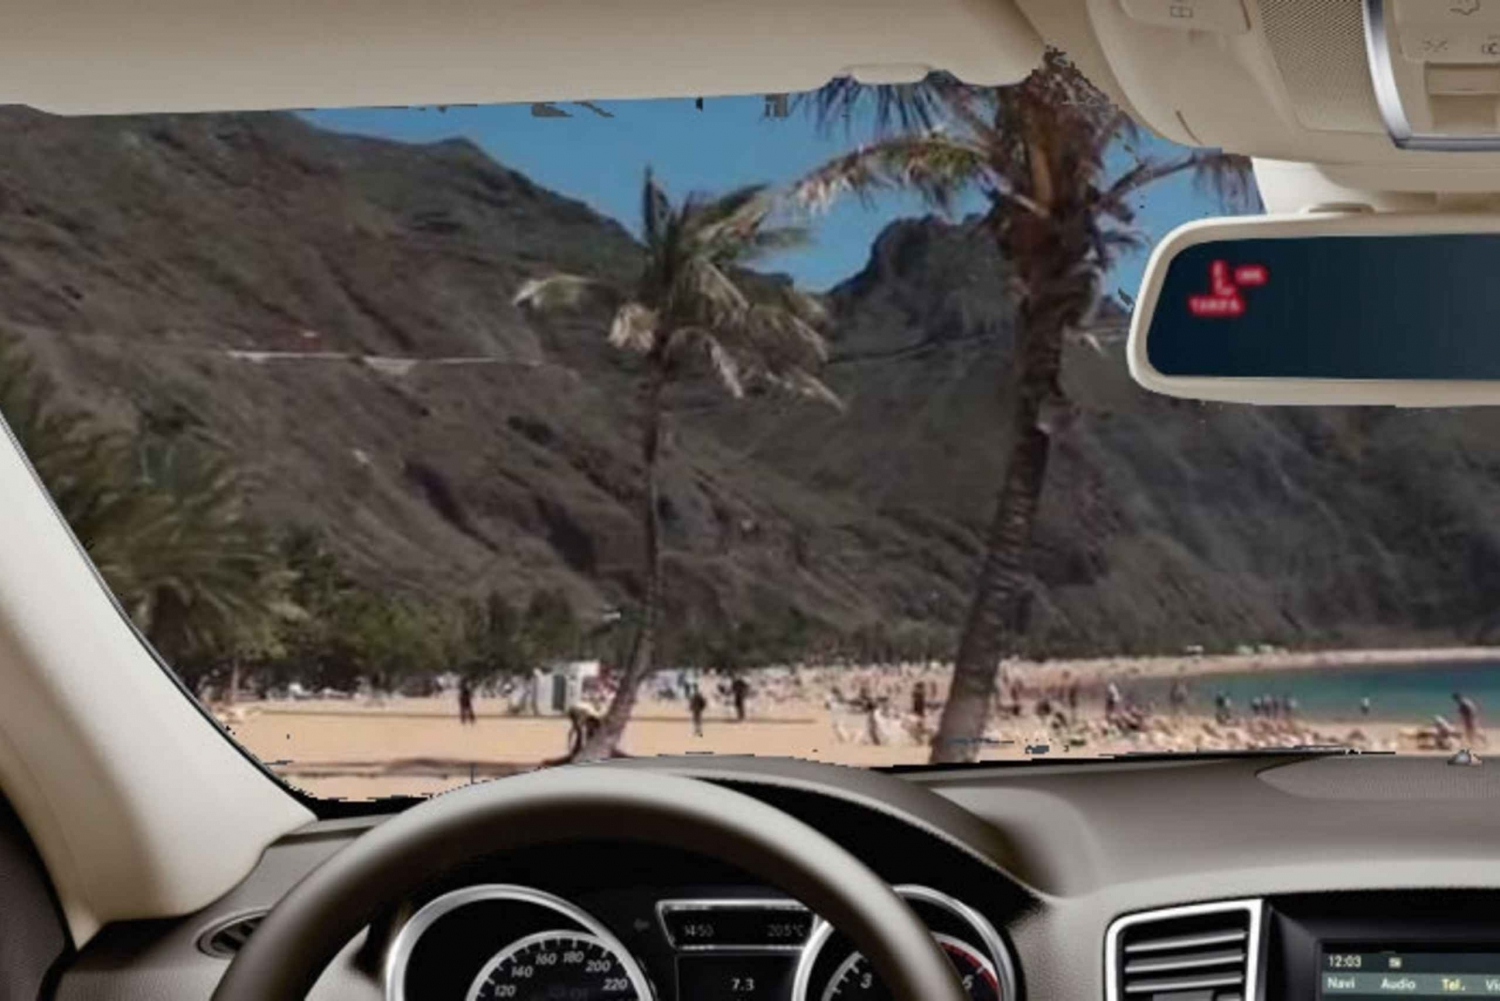 Adeje: South Island Hotel to Tenerife South Transfer